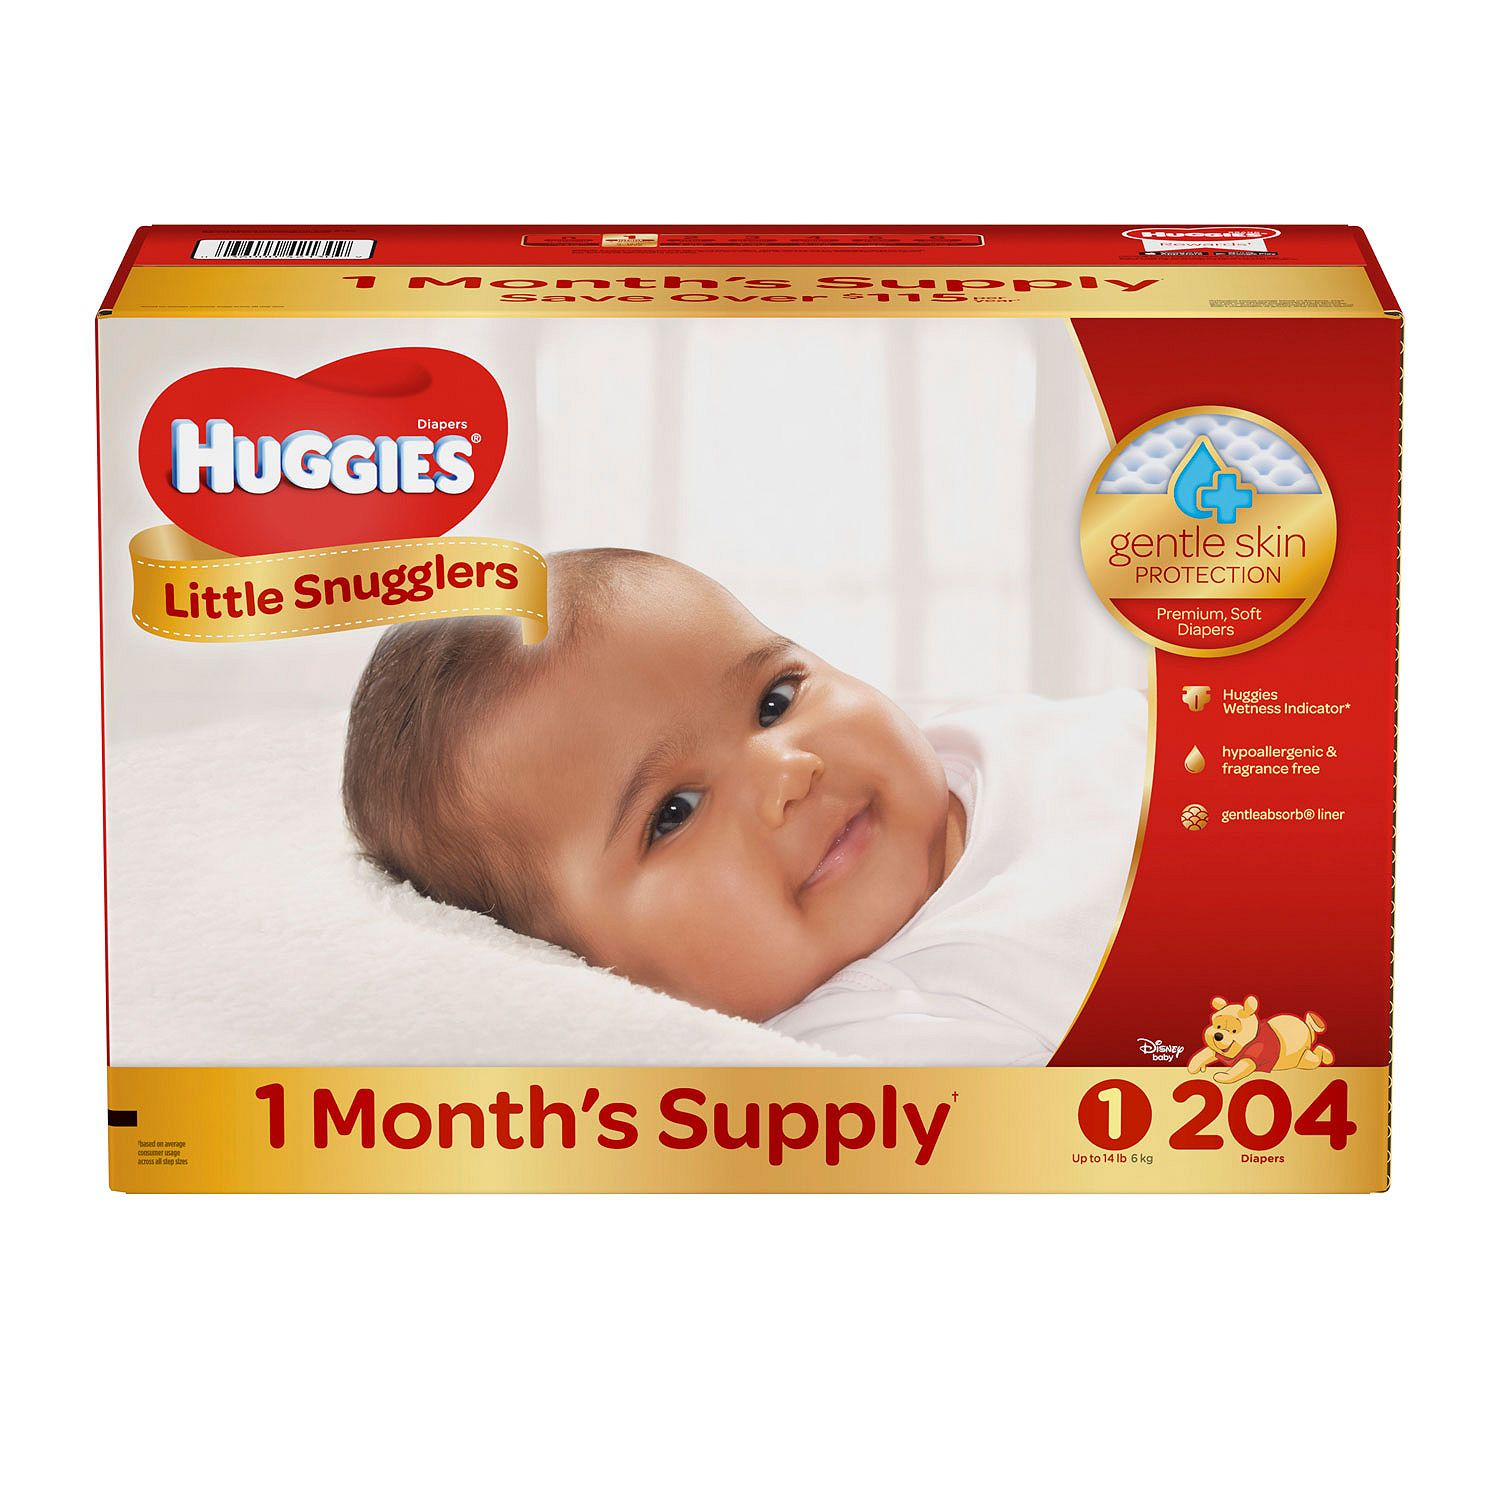 Huggies Little Snugglers Diapers Size 1 204 ct. ( Weight Up to 14 lbs.) Bulk Qty, Free Shipping Comfortable,... by Branded Diapers